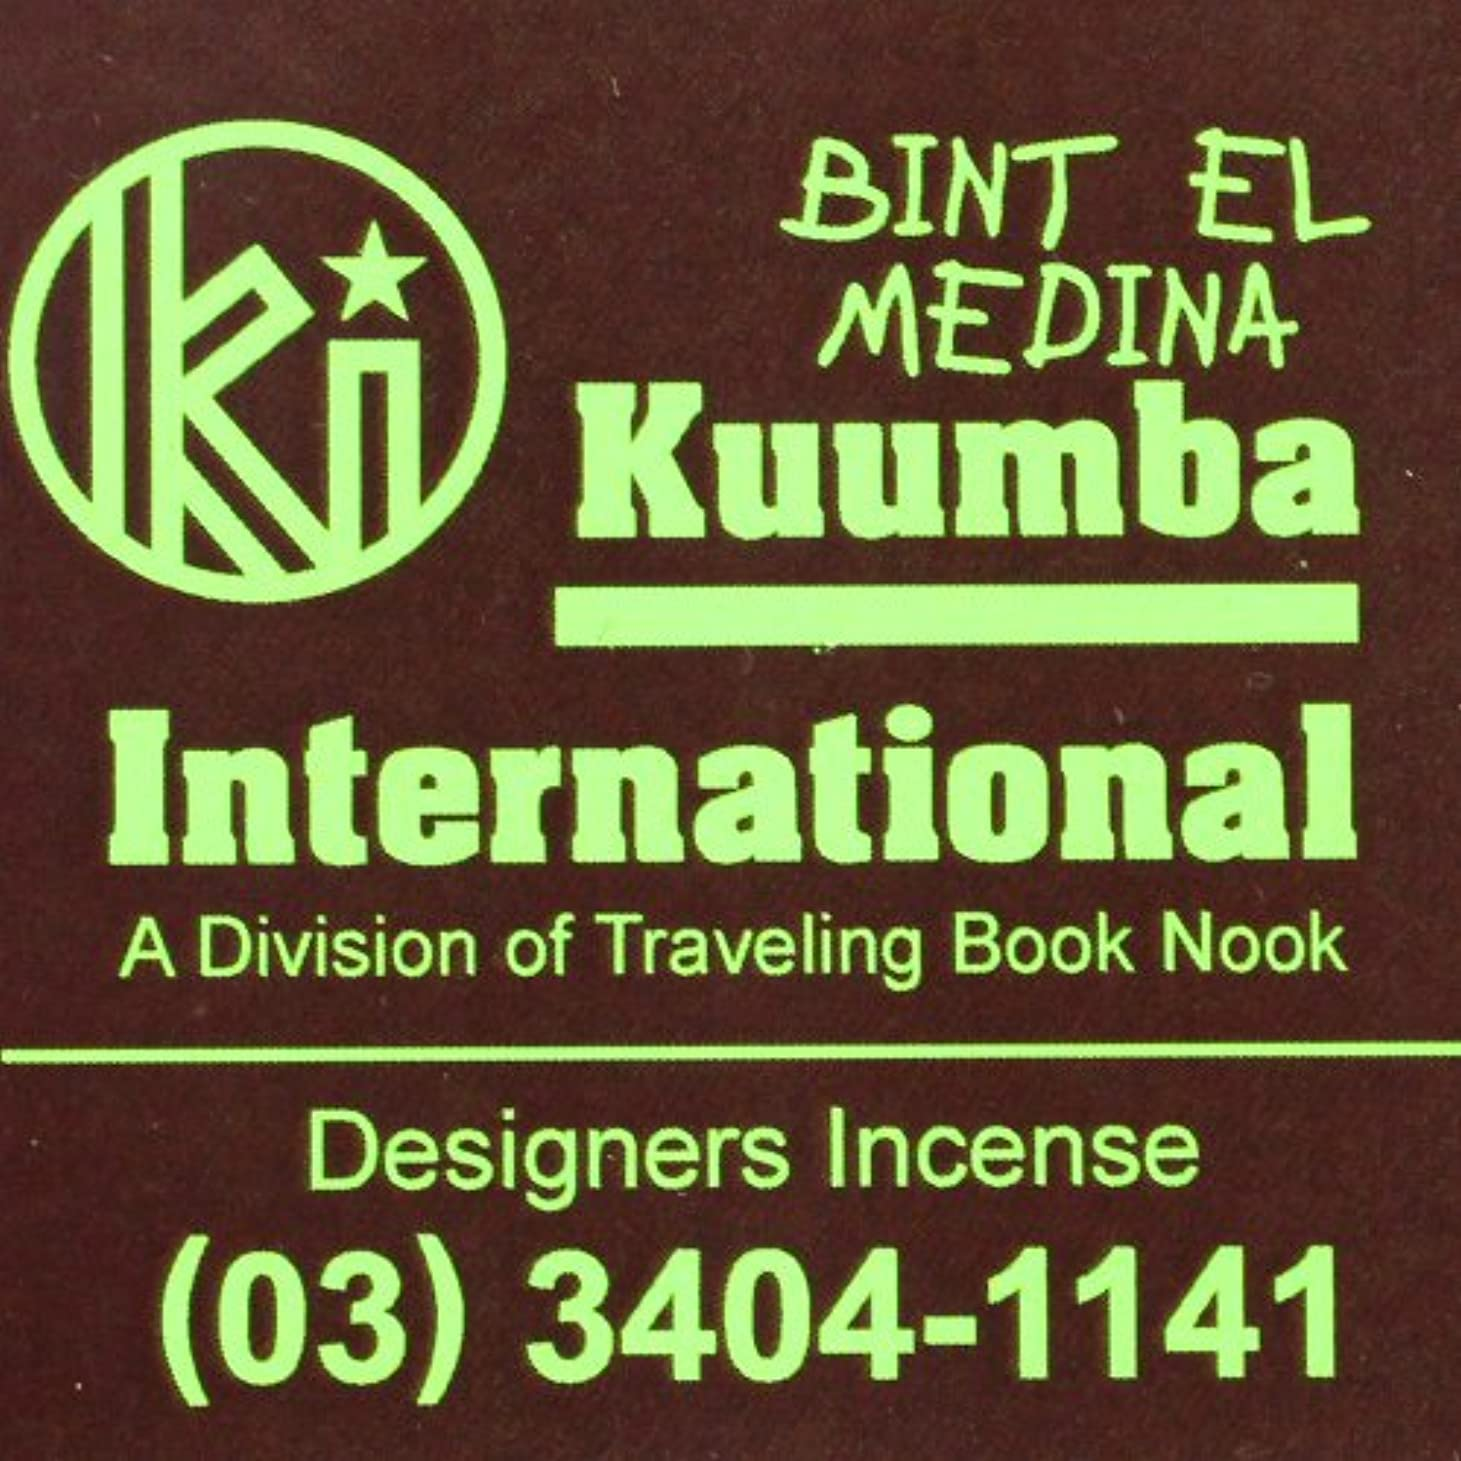 モンゴメリー震える安定した(クンバ) KUUMBA『classic regular incense』(BINT EL MEDINA) (Regular size)